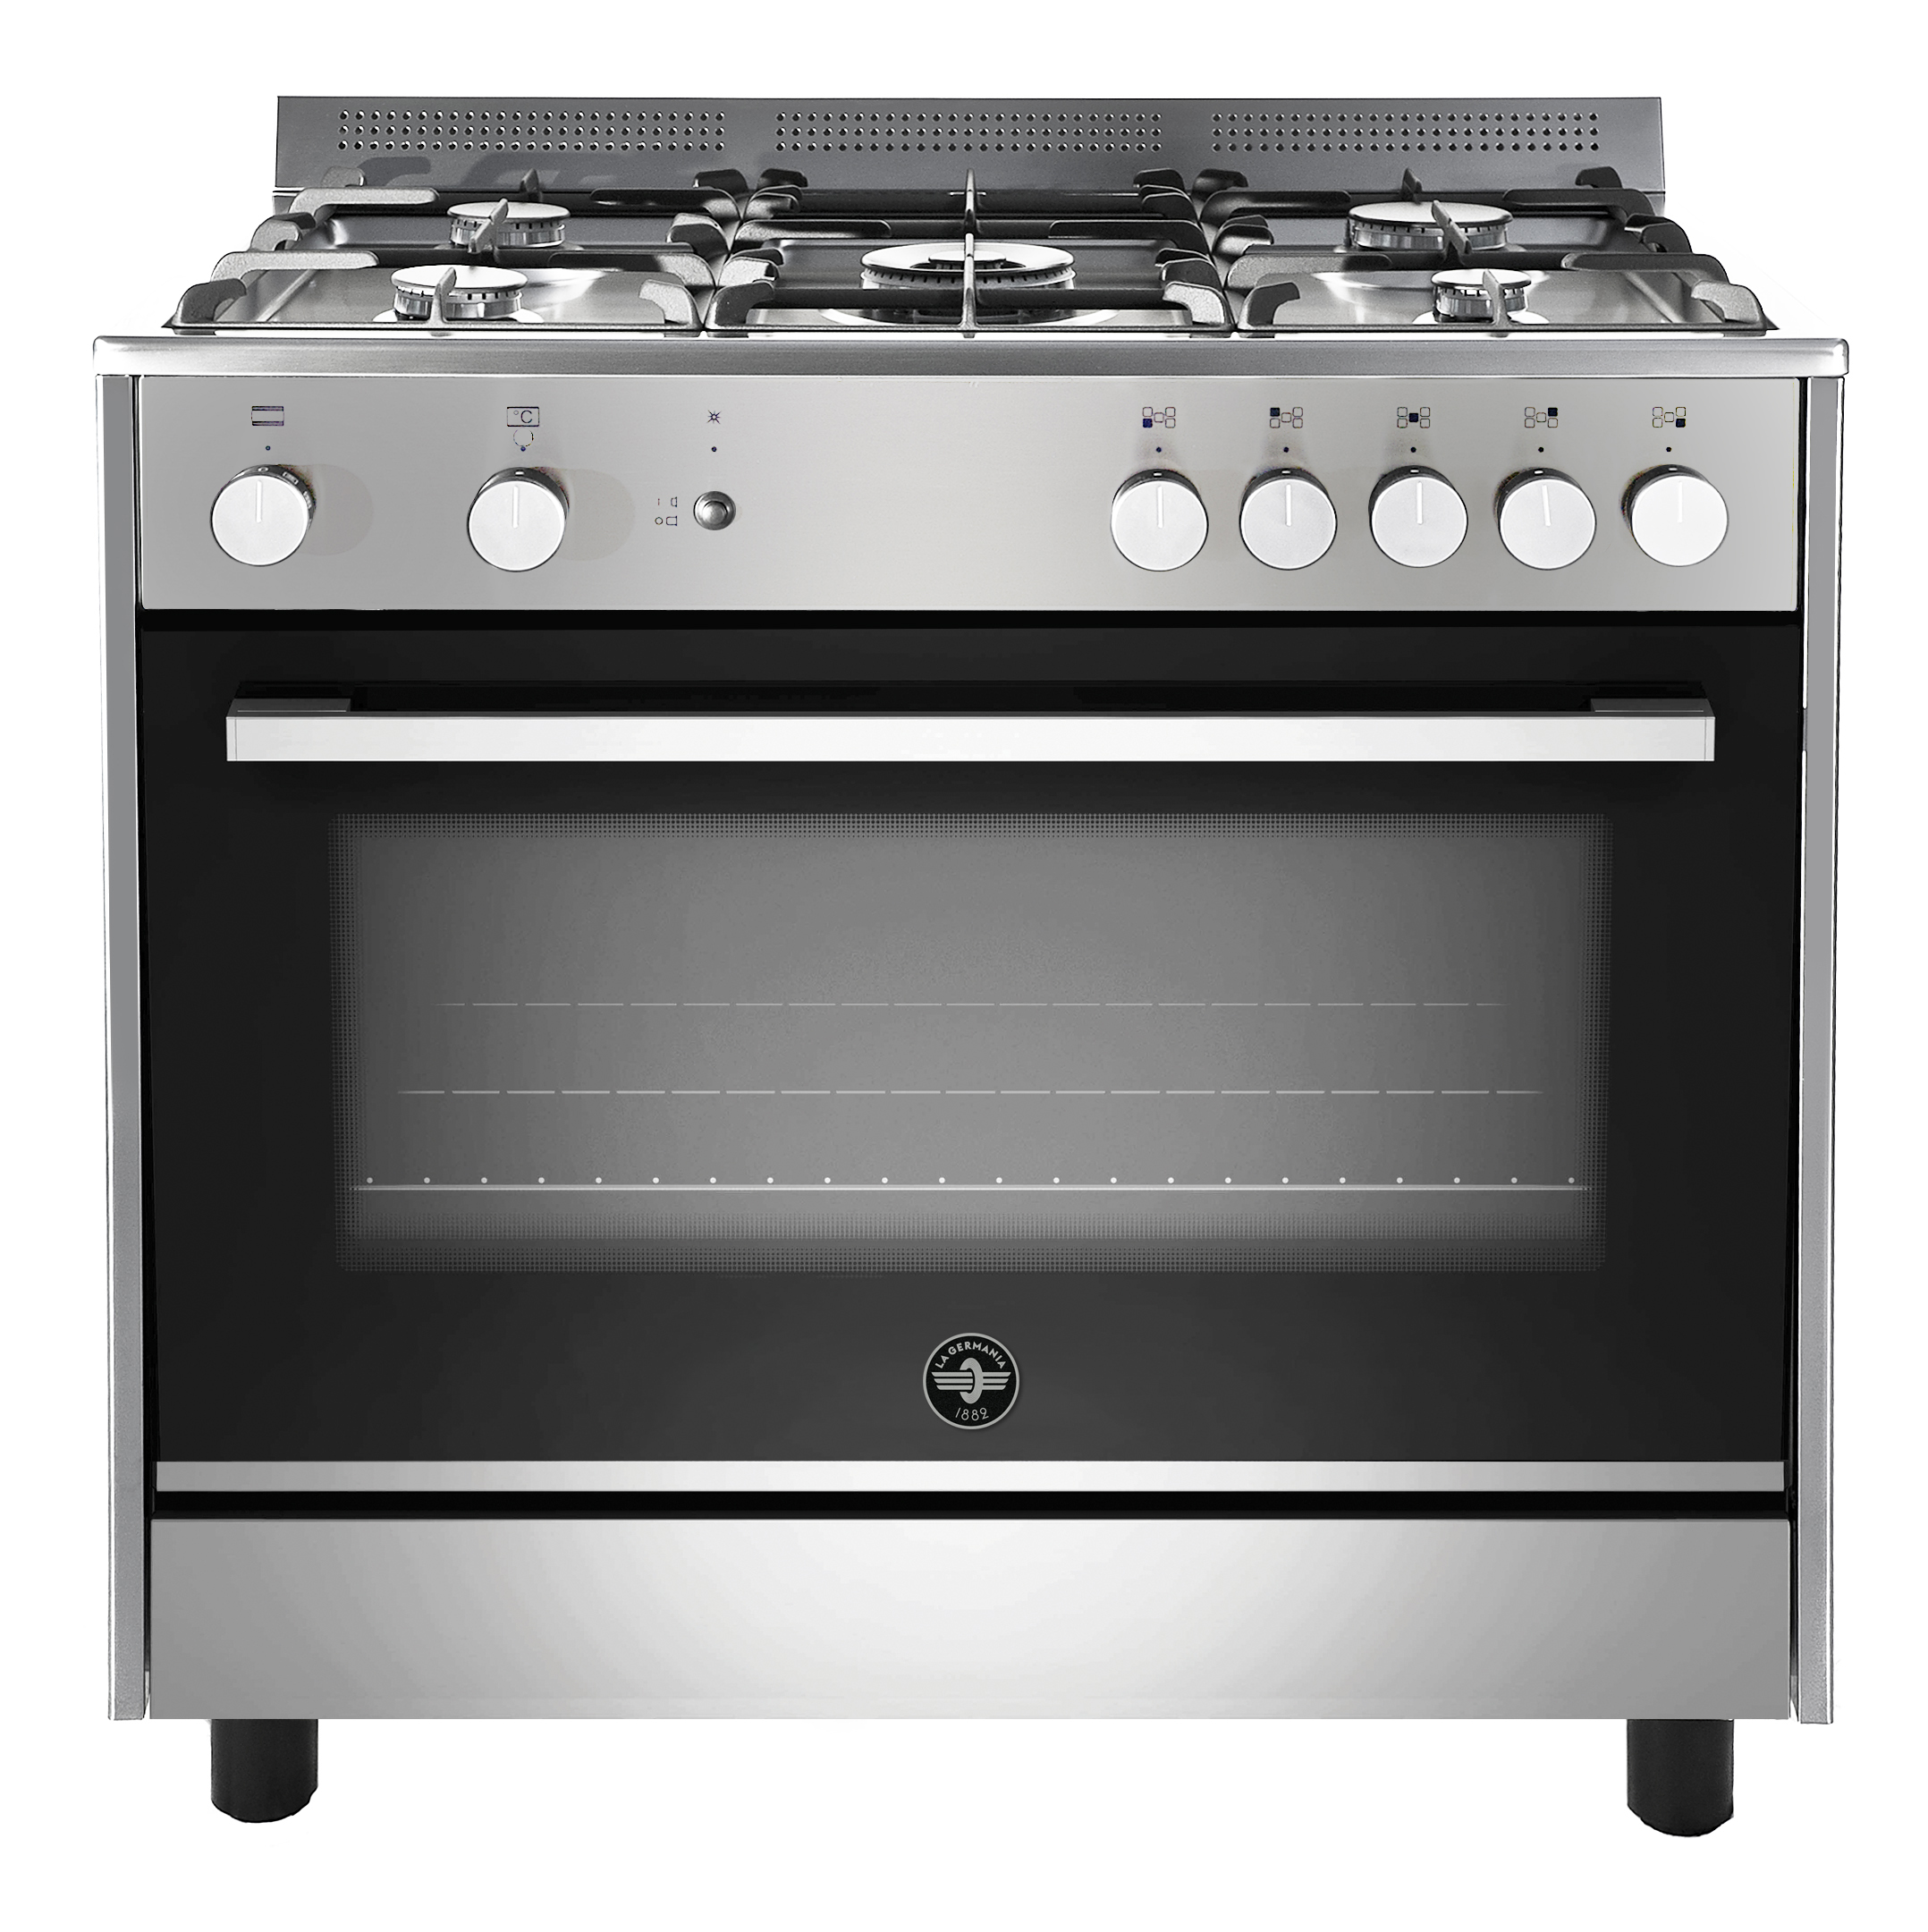 la-germania-900-mm-parma-5-burner-gas-electric-stove-stainless-steel-model-tus95c61ldxci